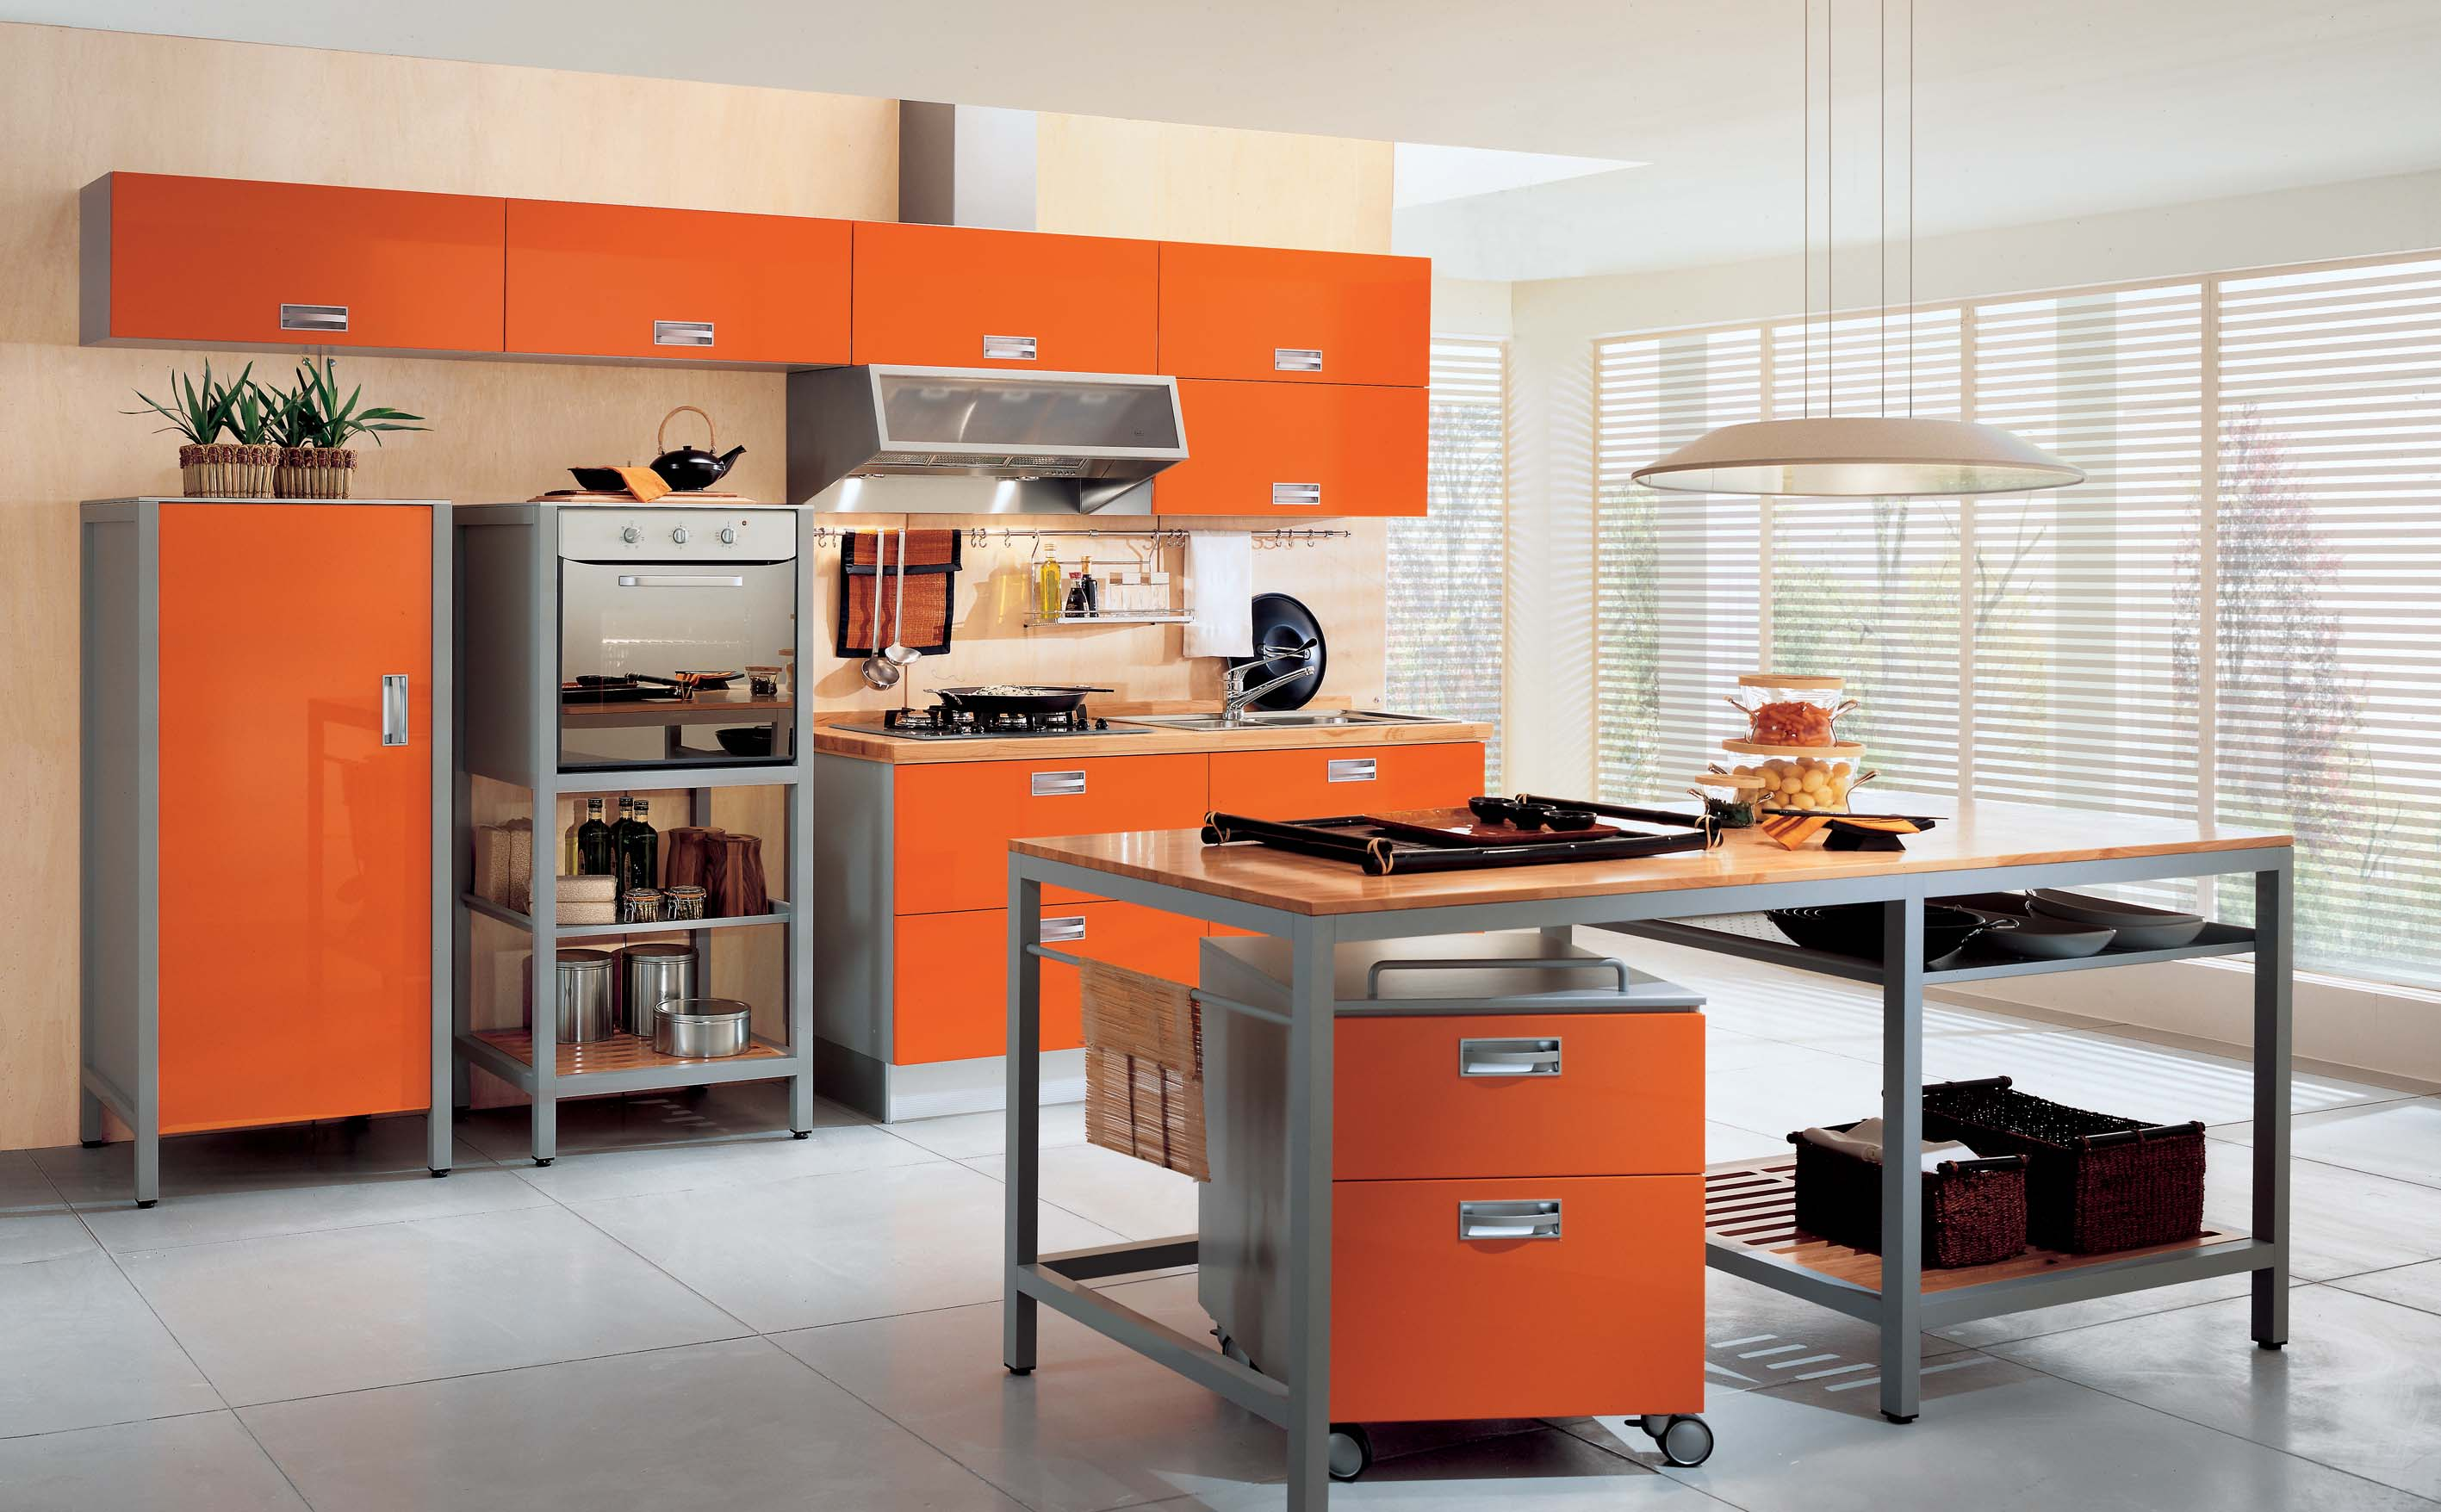 Interior Exterior Plan | Orange themed idea for modern kitchen